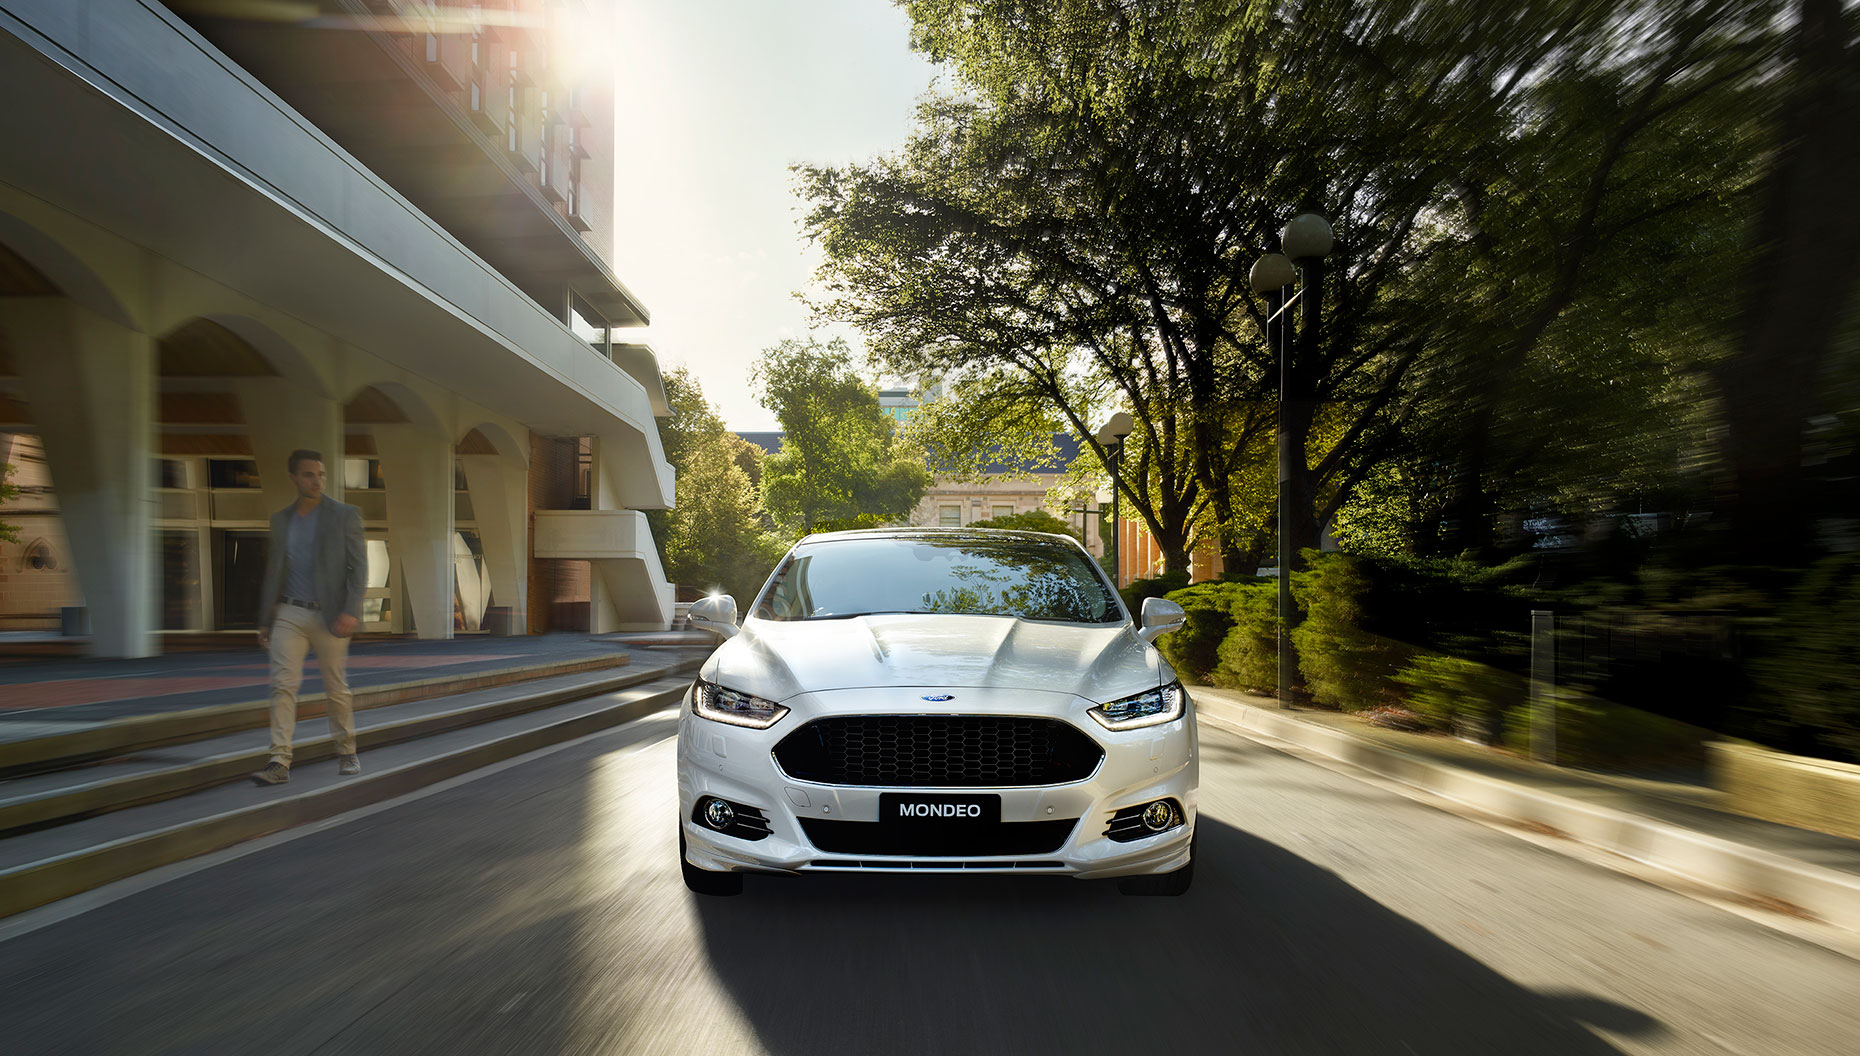 Mondeo-Front-Beauty-Shot-Uni